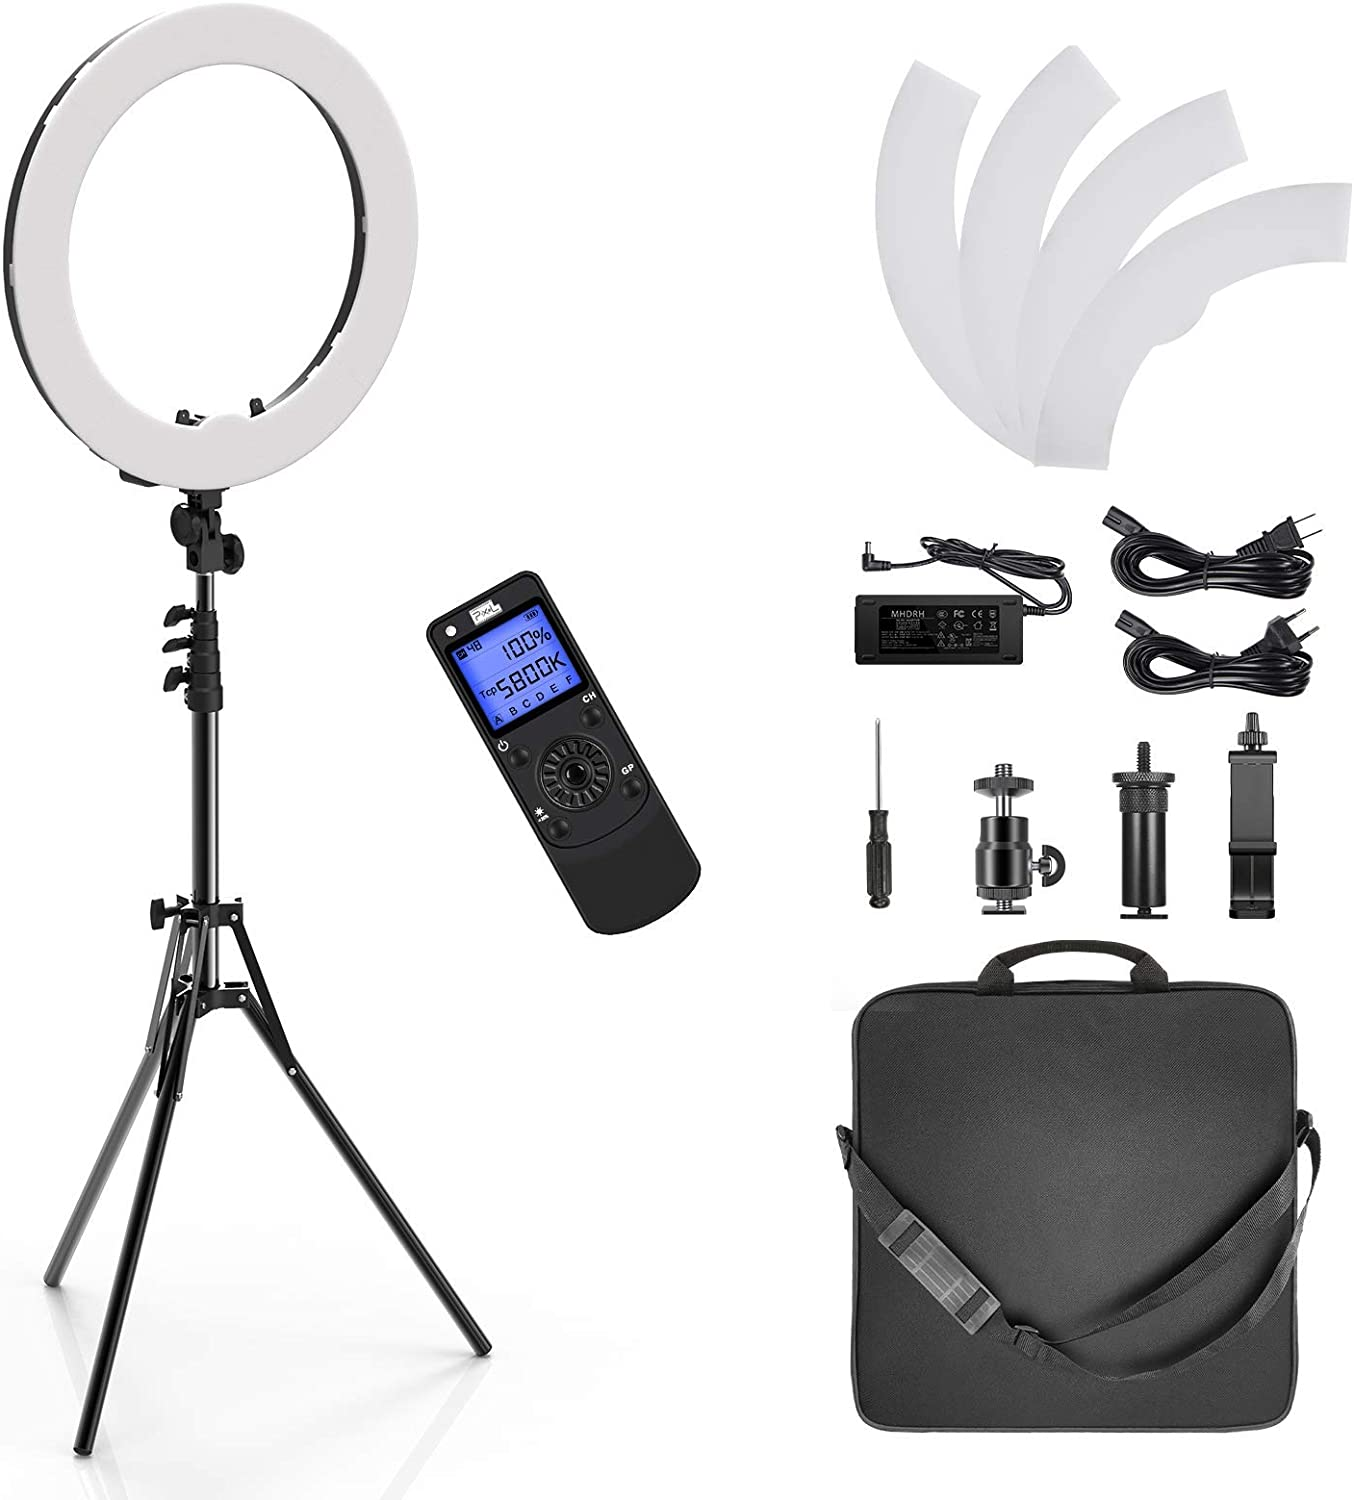 Pixel 19inch Selfie Ring Light with Wireless Remote Control